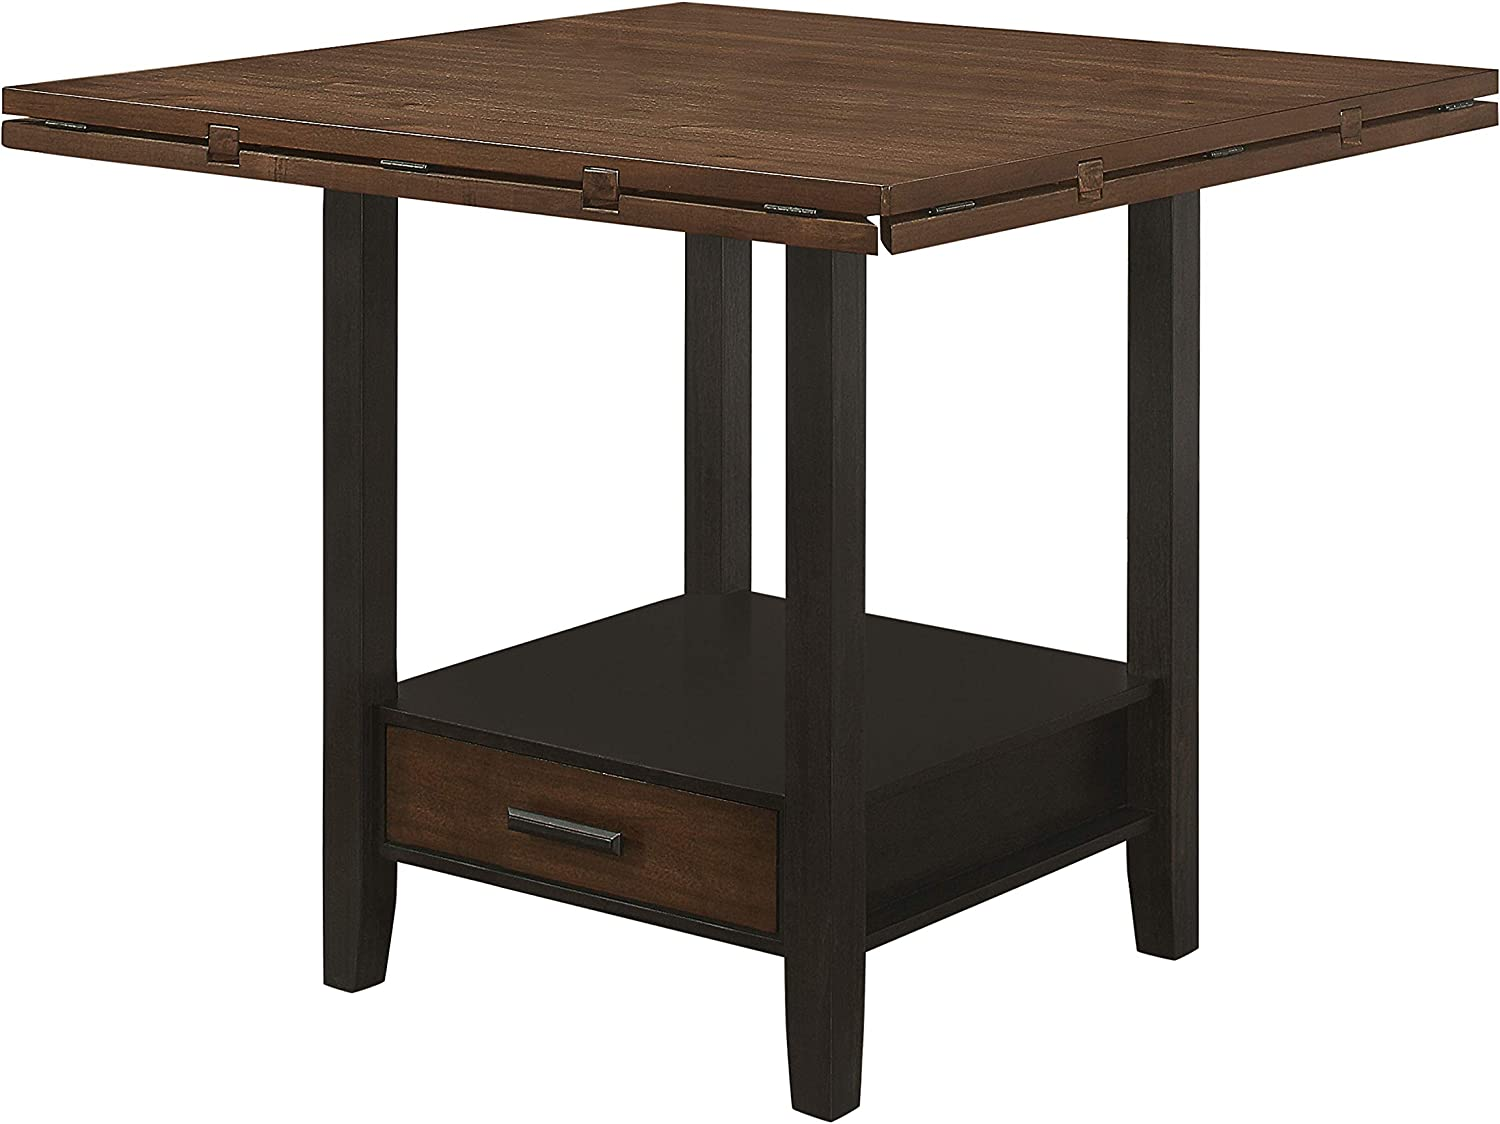 Coaster Home Furnishings Sanford Round Height Drop Leaf Cinnamon and Espresso Counter Dining Table